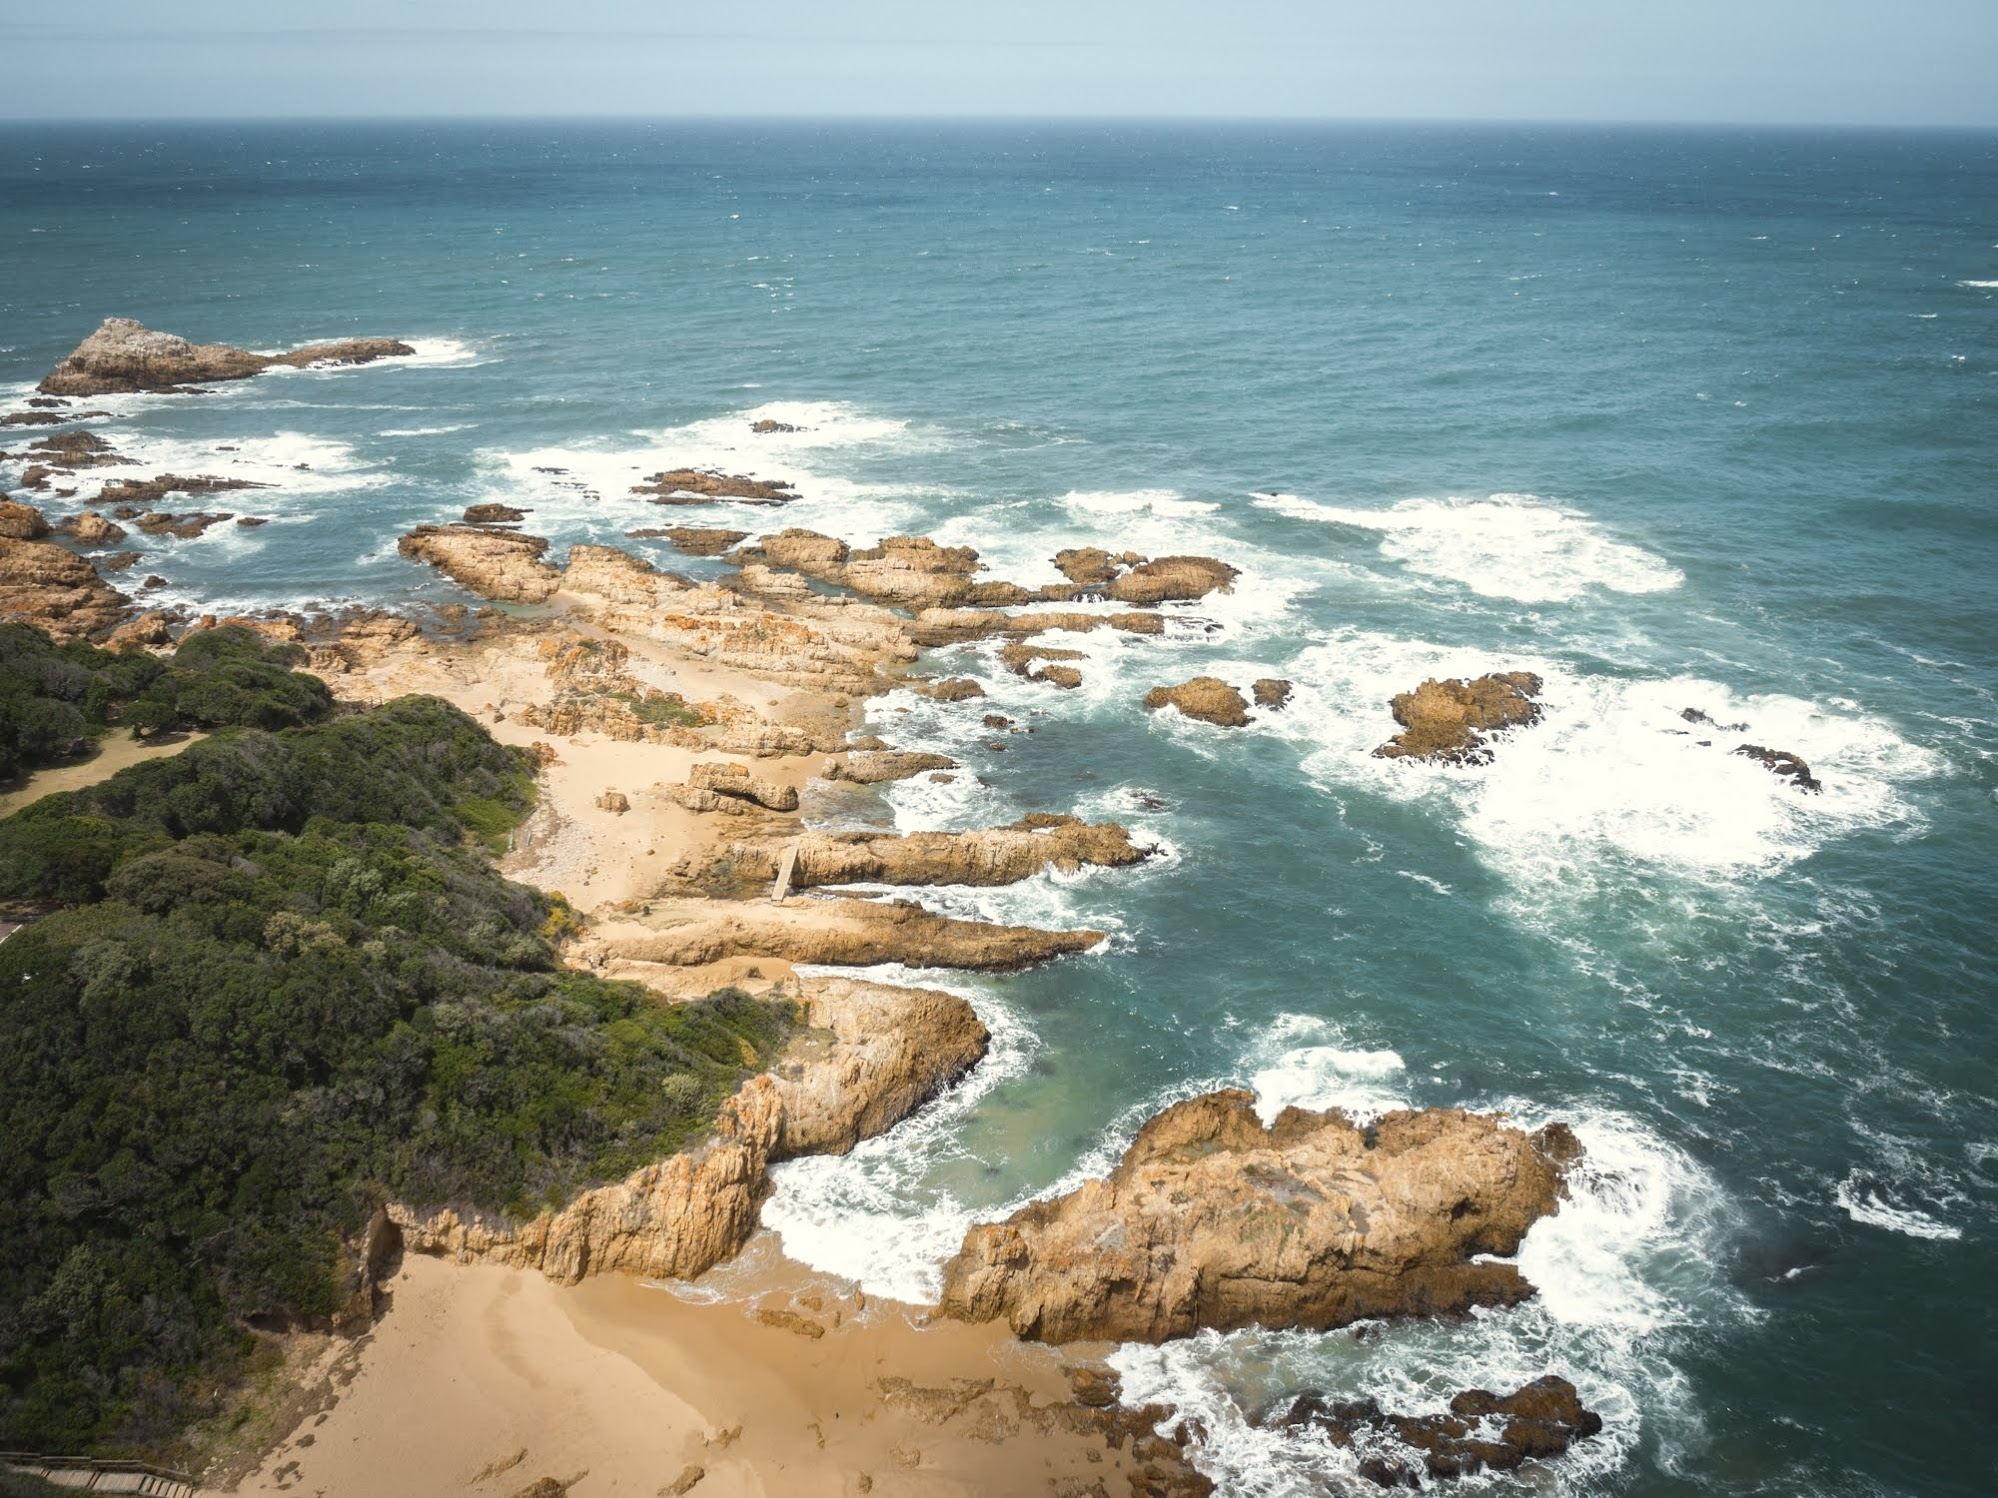 Knysna Head on the spectacular Garden Route, South Africa